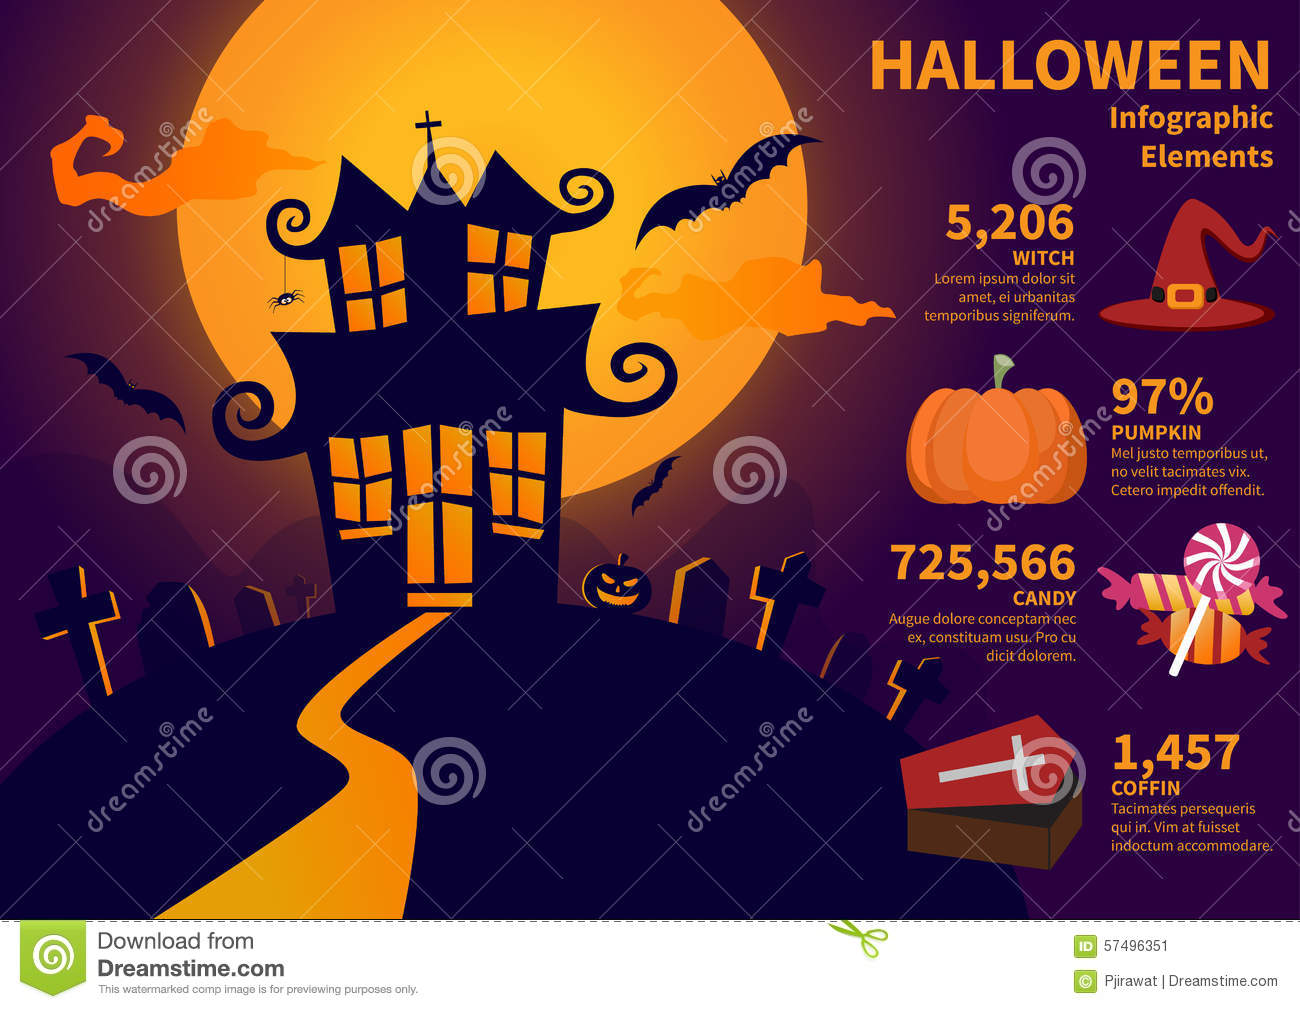 Halloween web design elements templates logos and photos